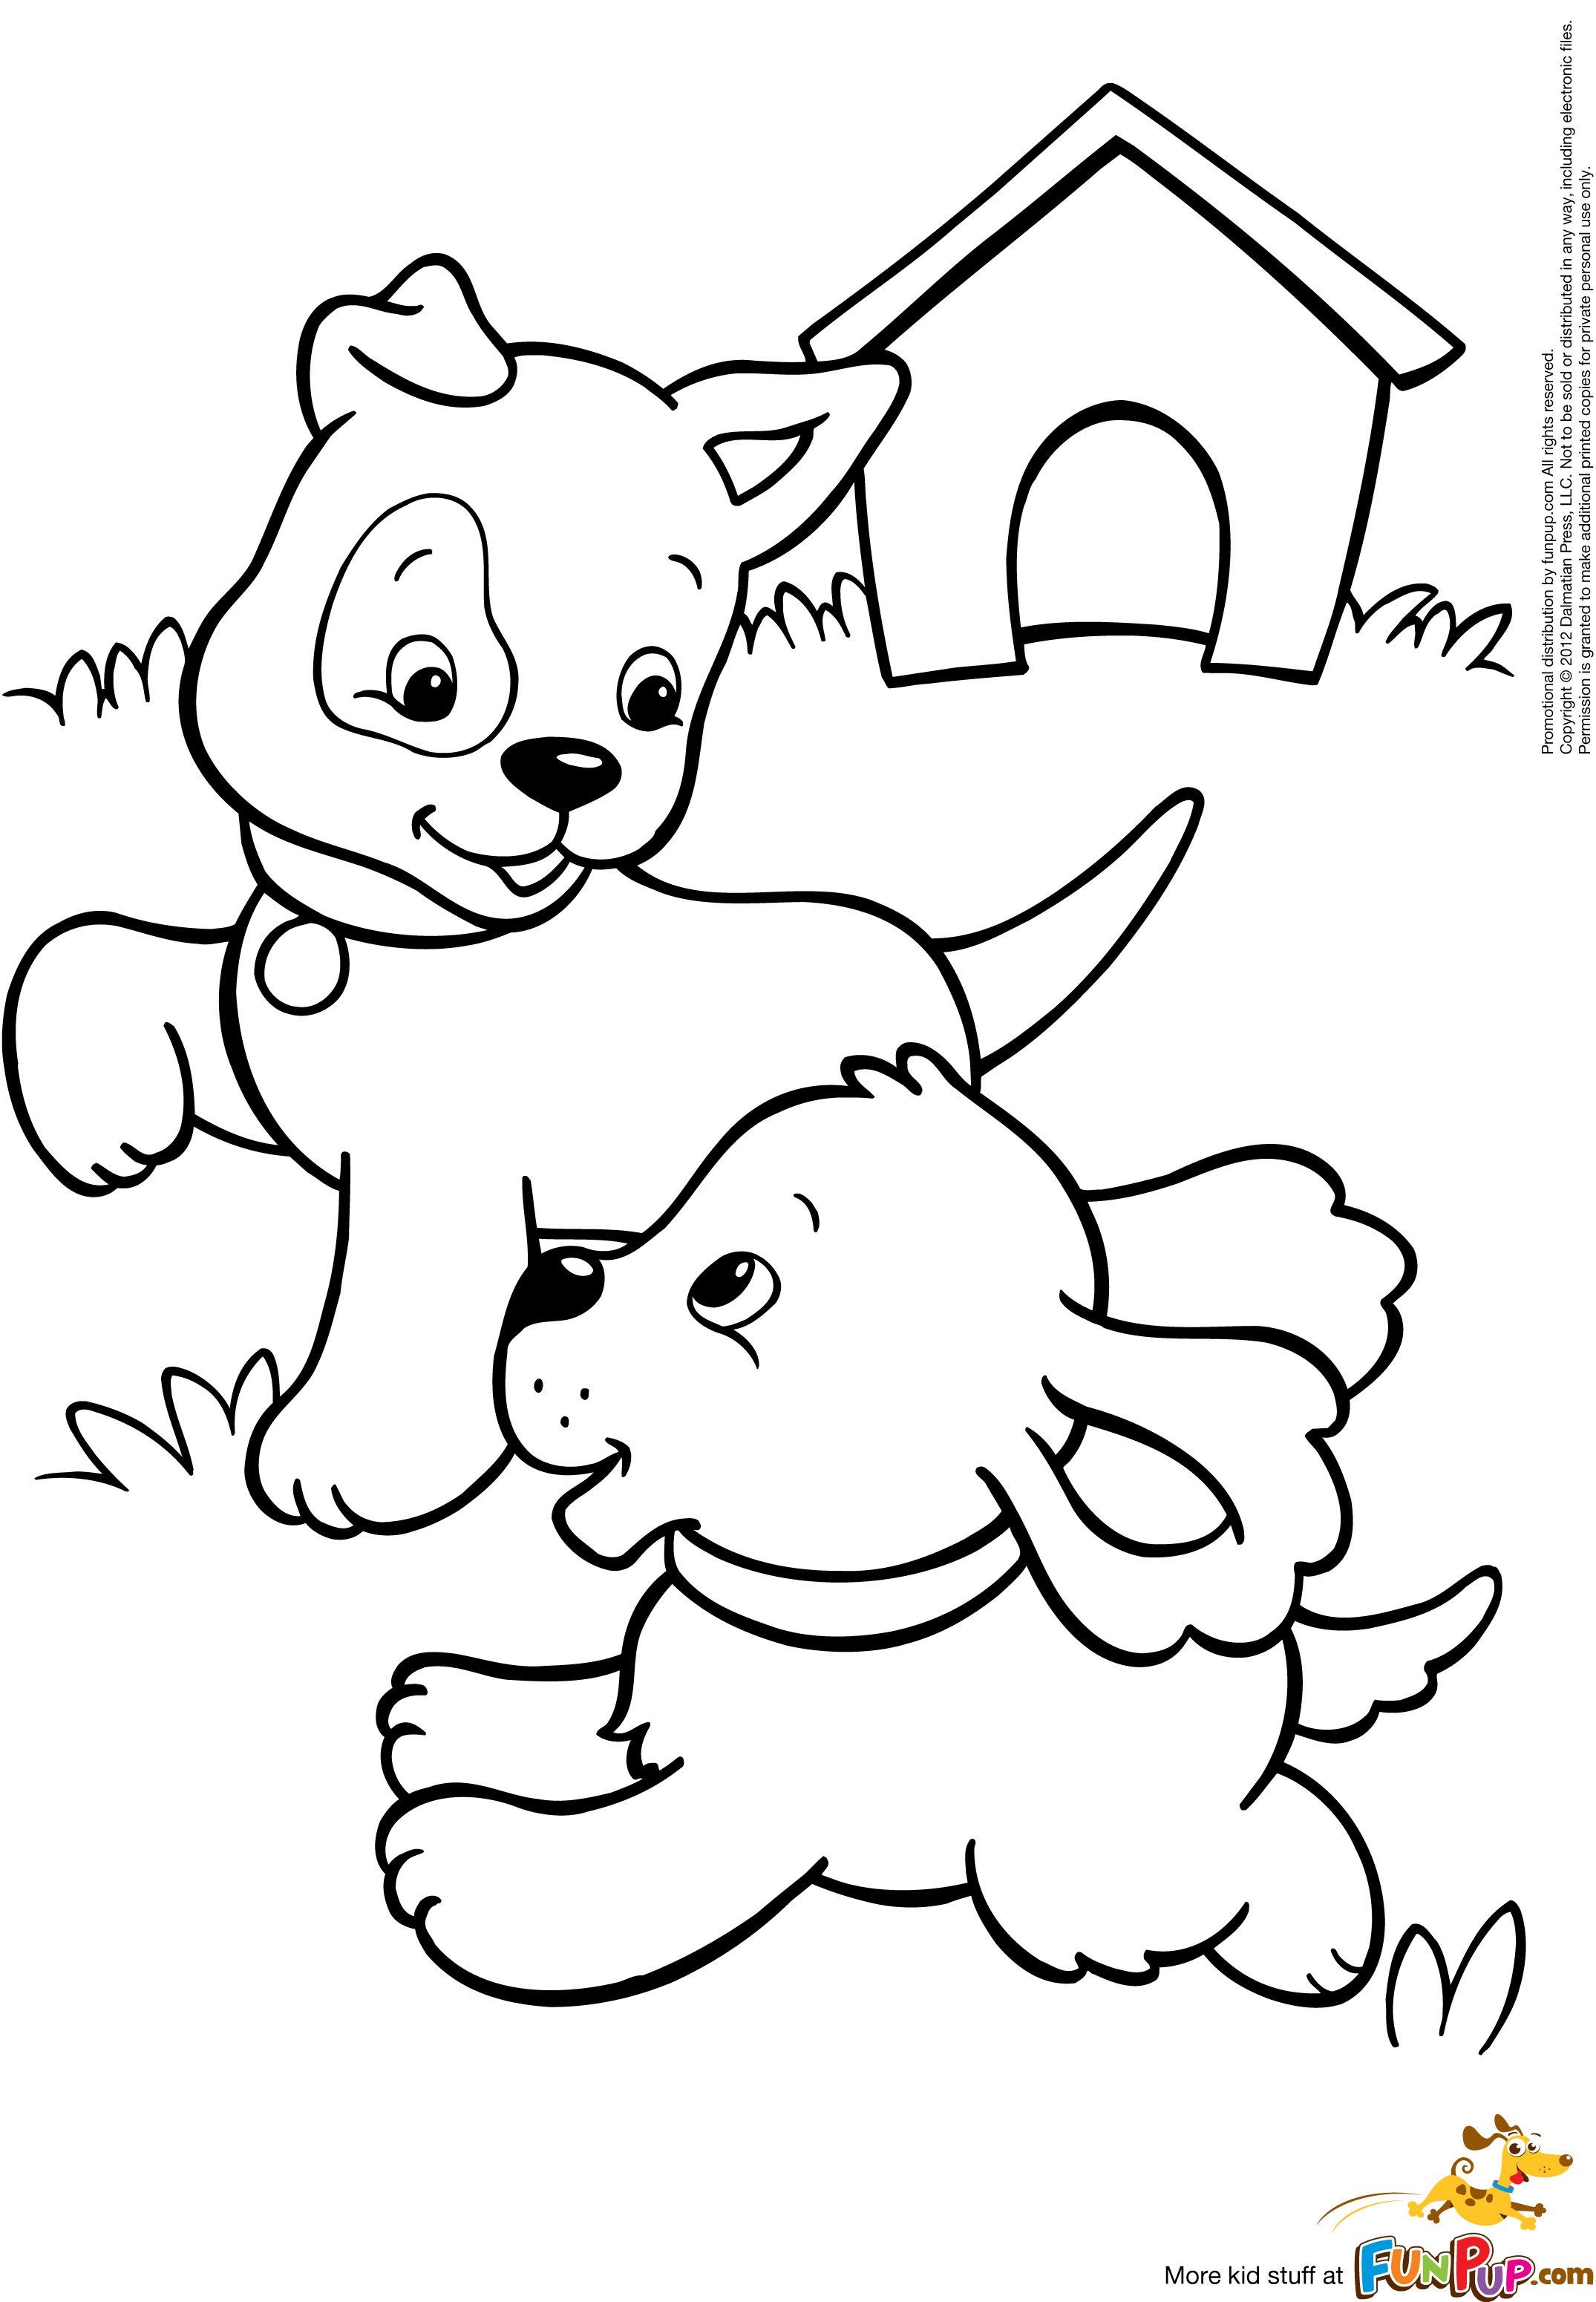 Adult Beauty Coloring Pages Cute Puppies Images beauty free puppy coloring pages dogs and puppies gallery images